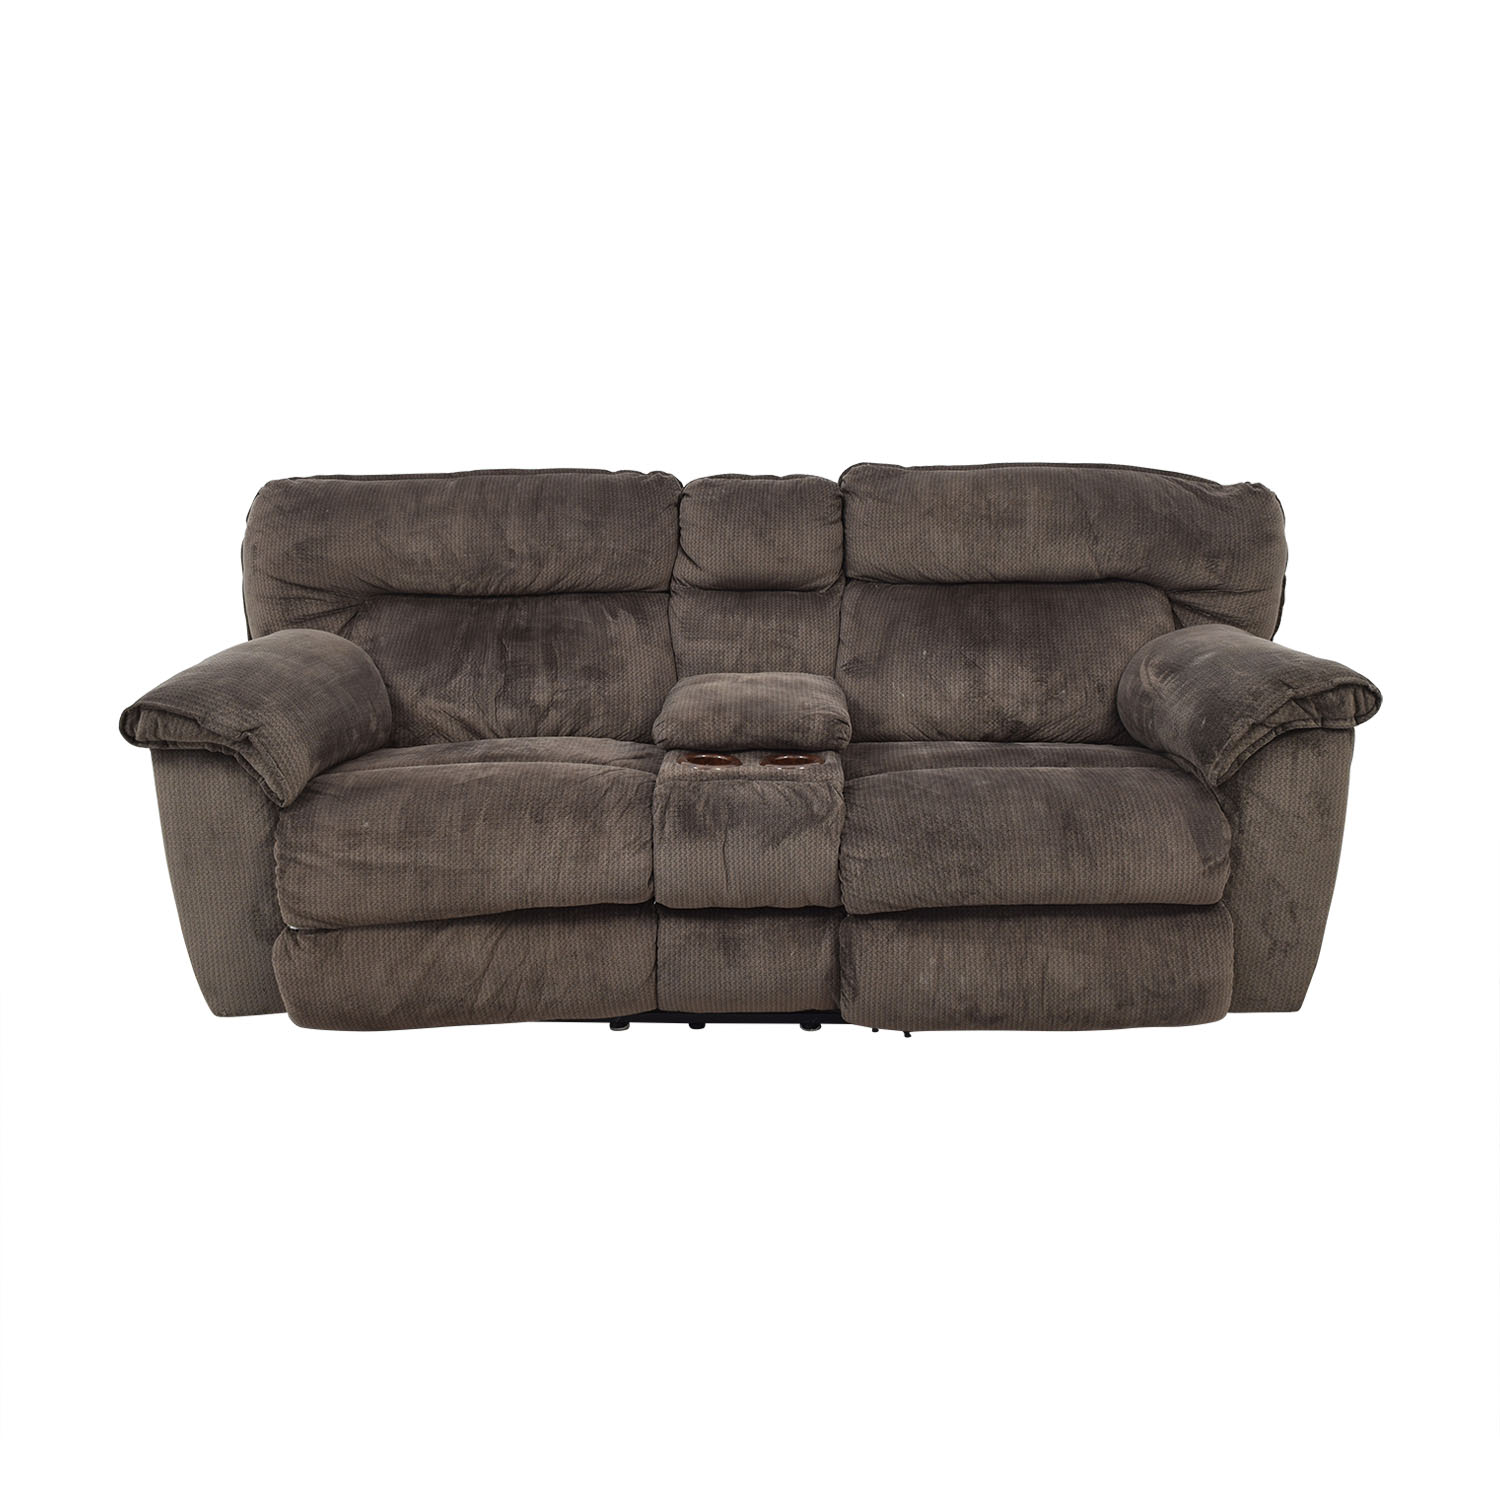 Two Seat Recliner Loveseat on sale